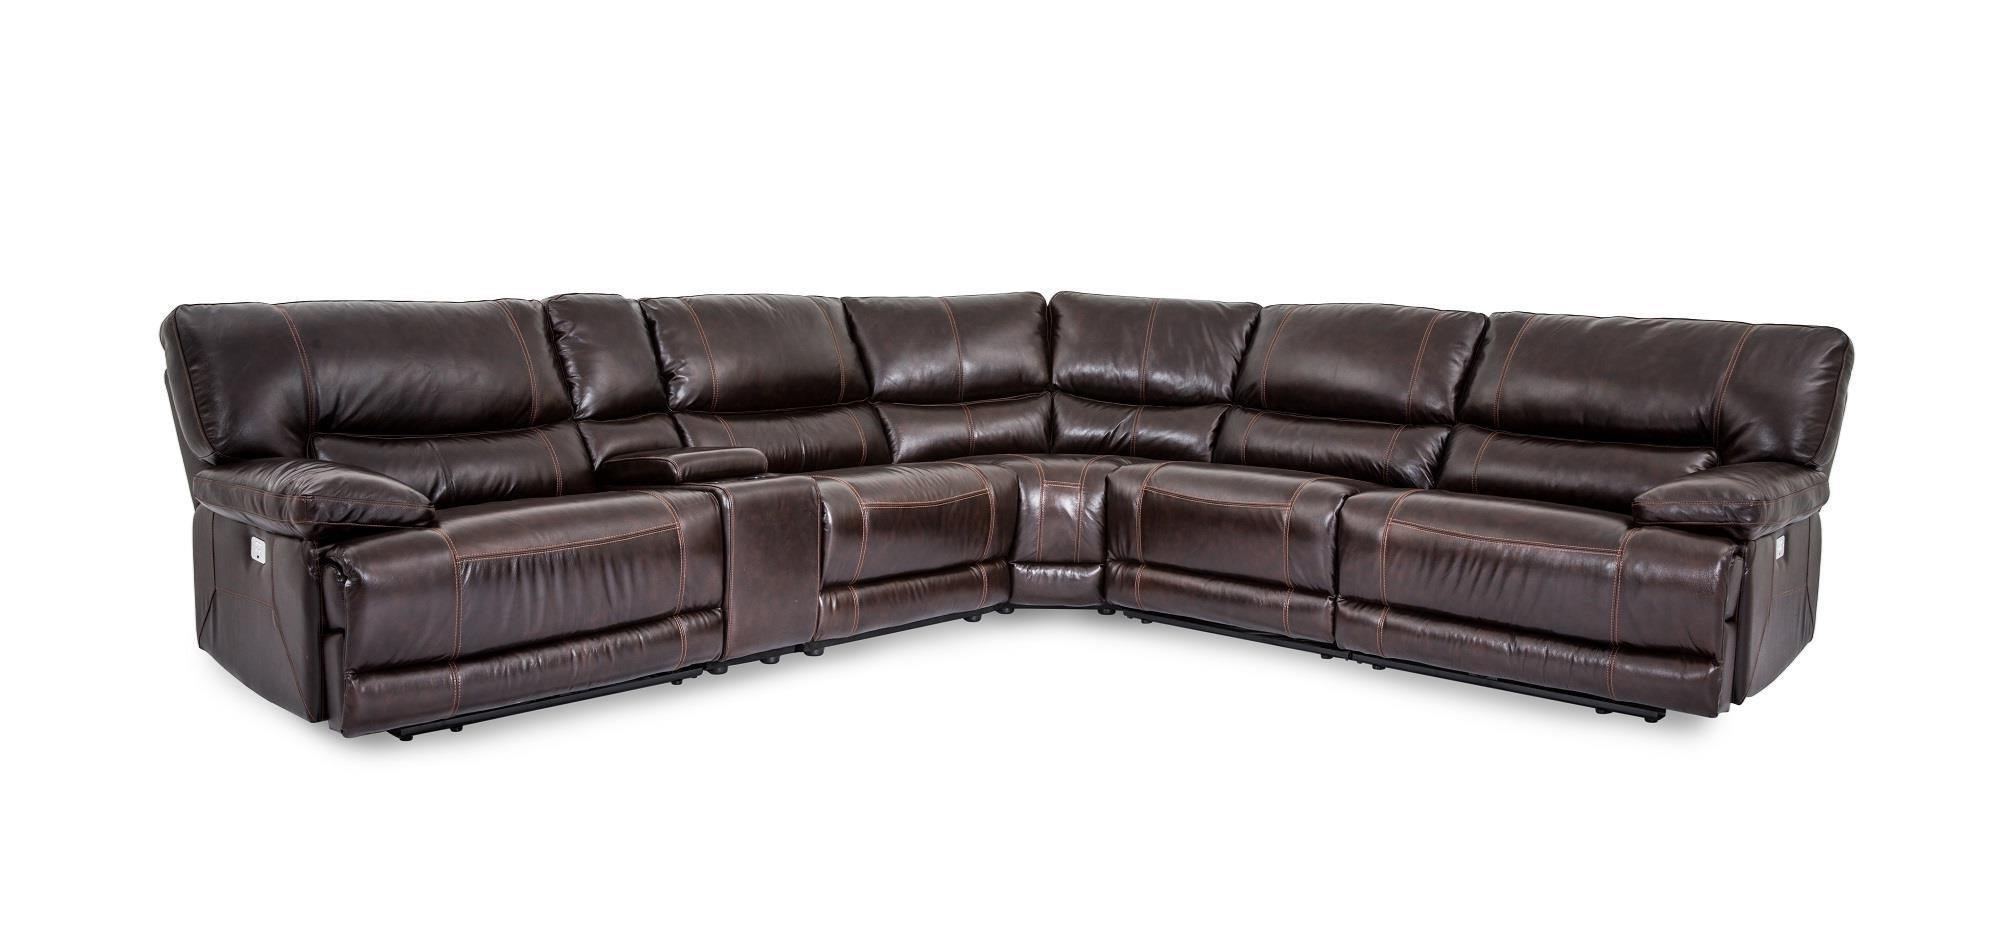 cheers sofa x9509m x9509m collins leather power reclining 6 piece rh dunkandbright com brandie leather 6-piece sectional sofa with 3 power recliners winterton 6-pc. leather sectional sofa